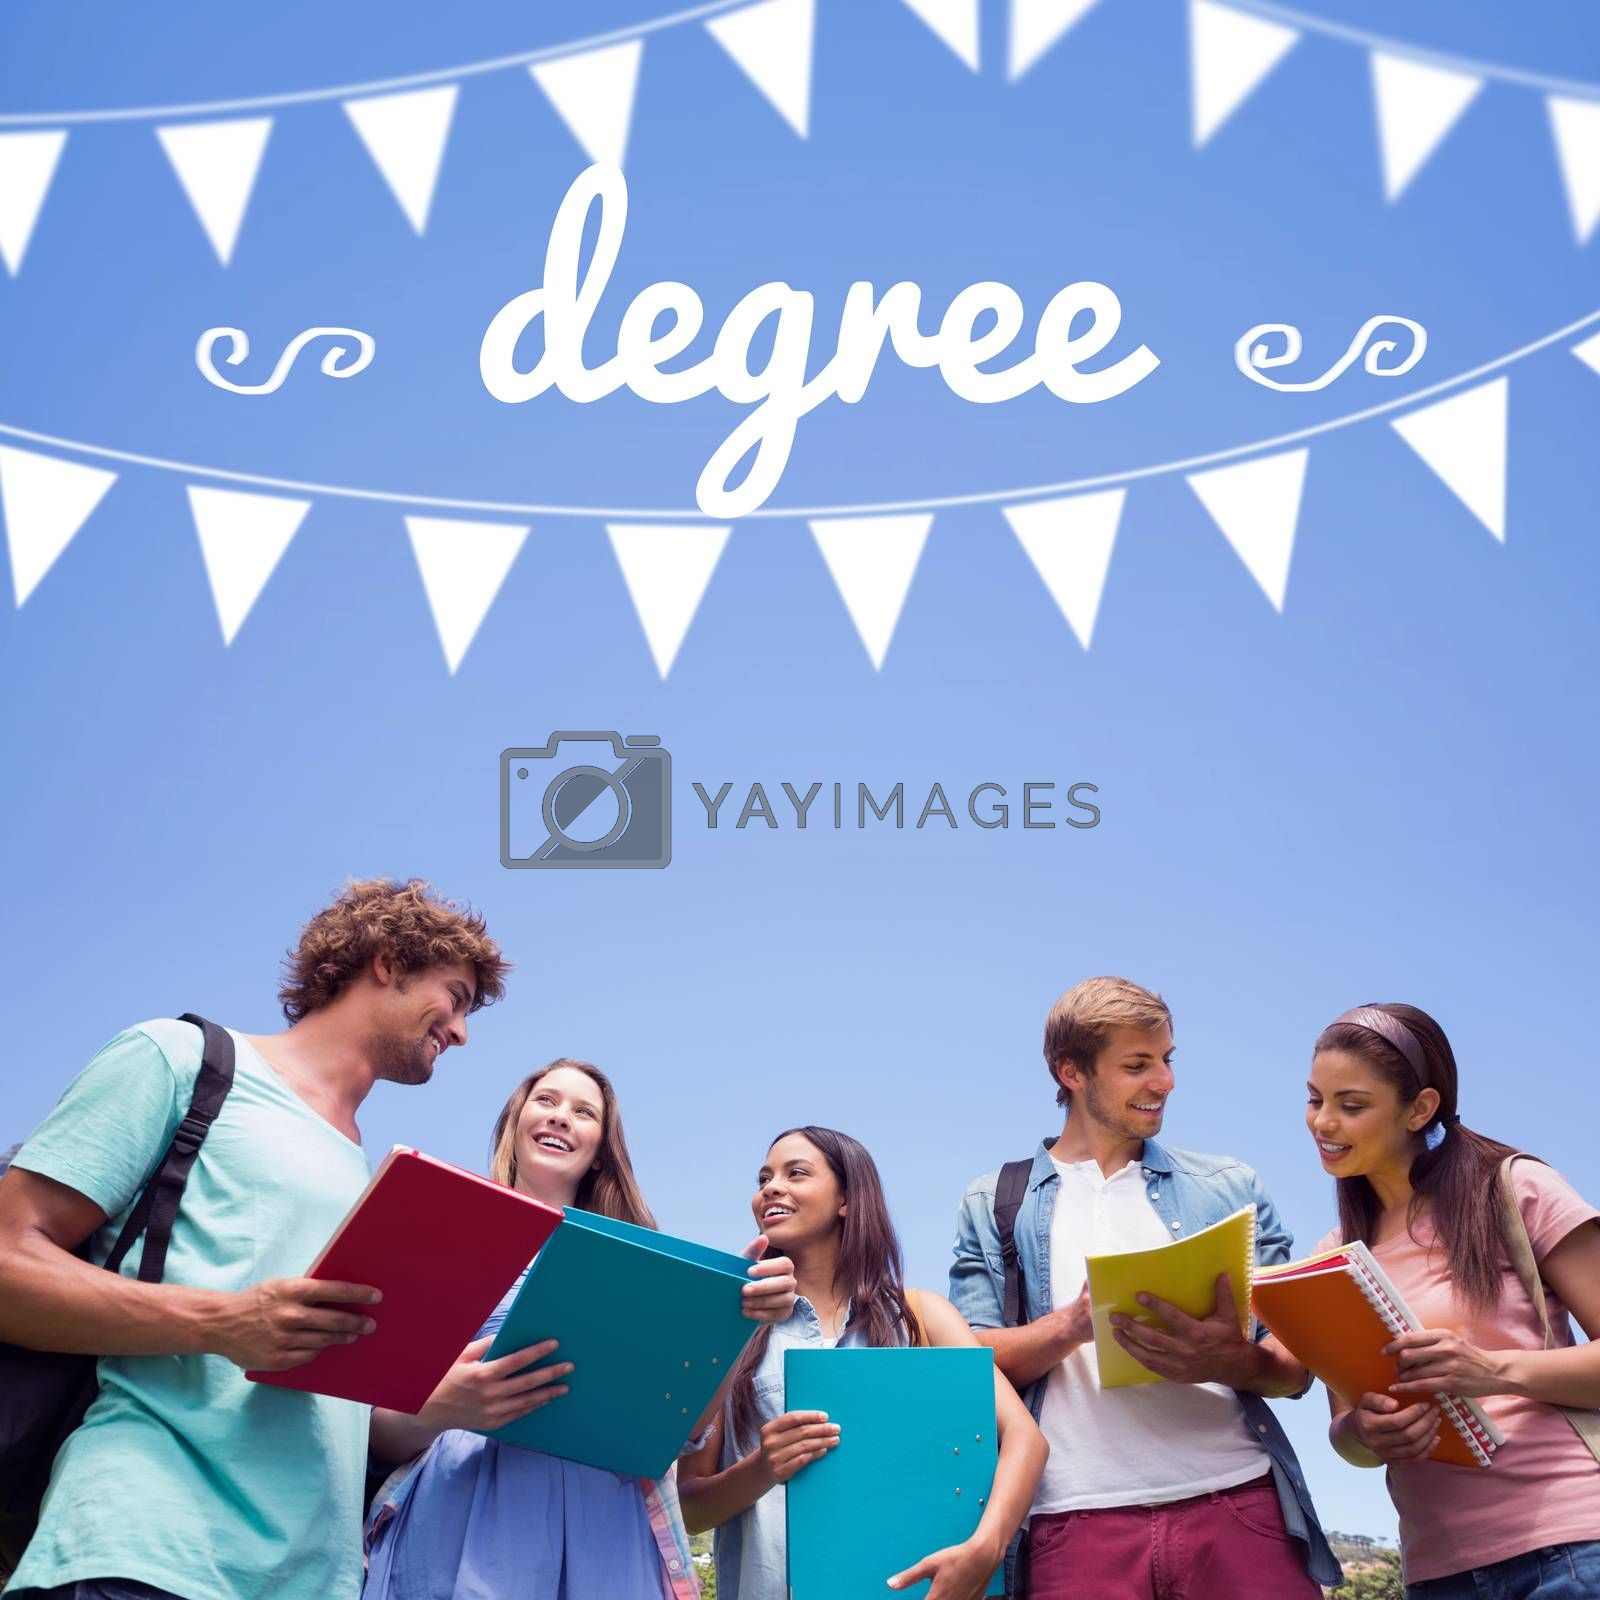 Degree against students standing and chatting together  by Wavebreakmedia